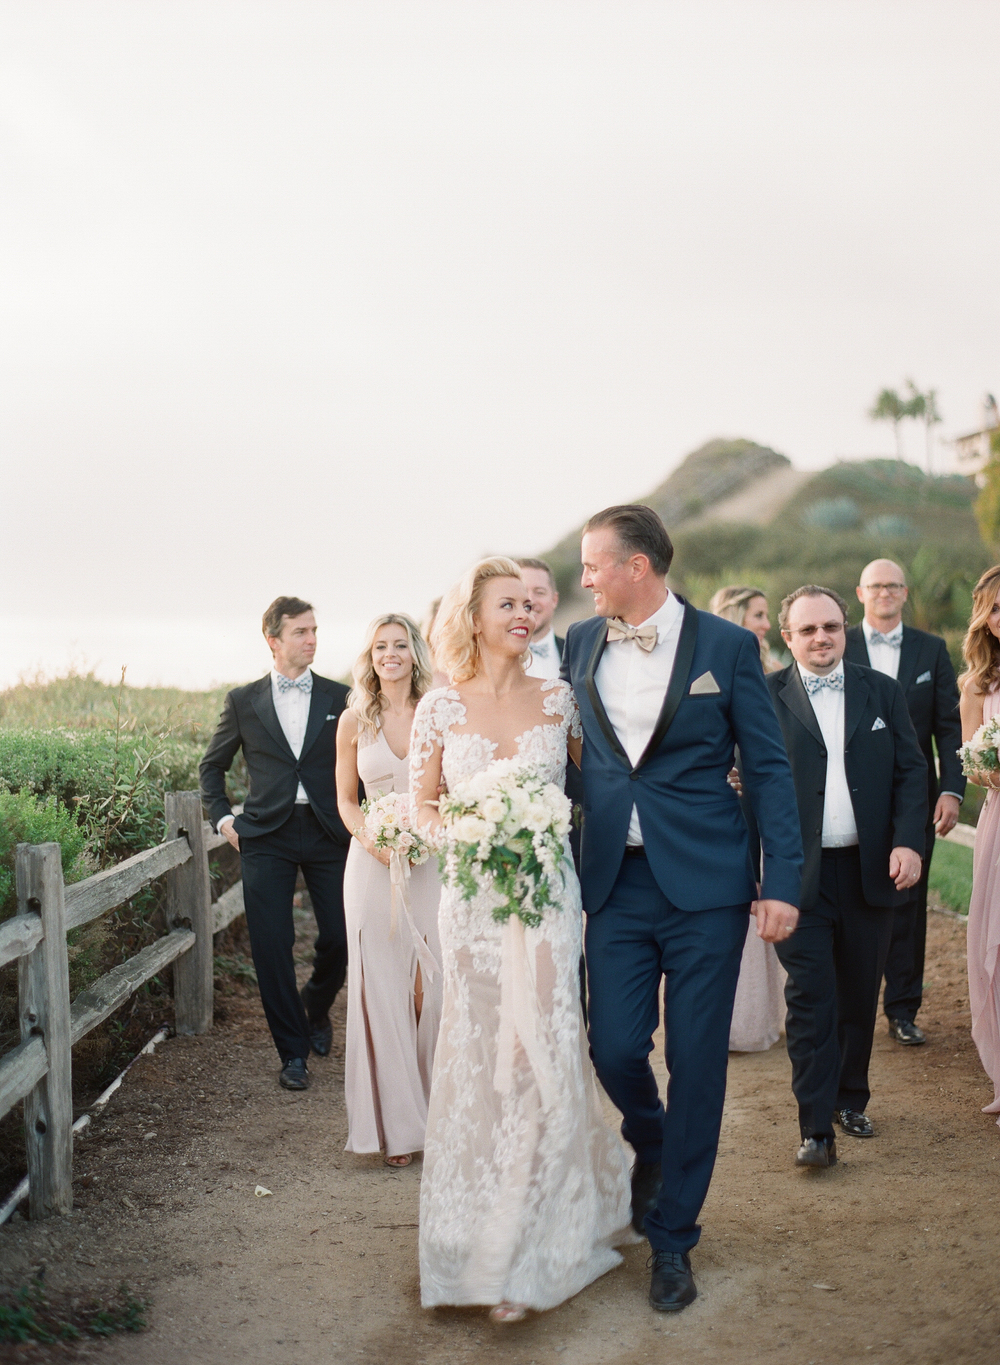 michellebeller.com | Michelle Beller Photography | Santa Barbara Wedding Photographer | Southern California Wedding Planning